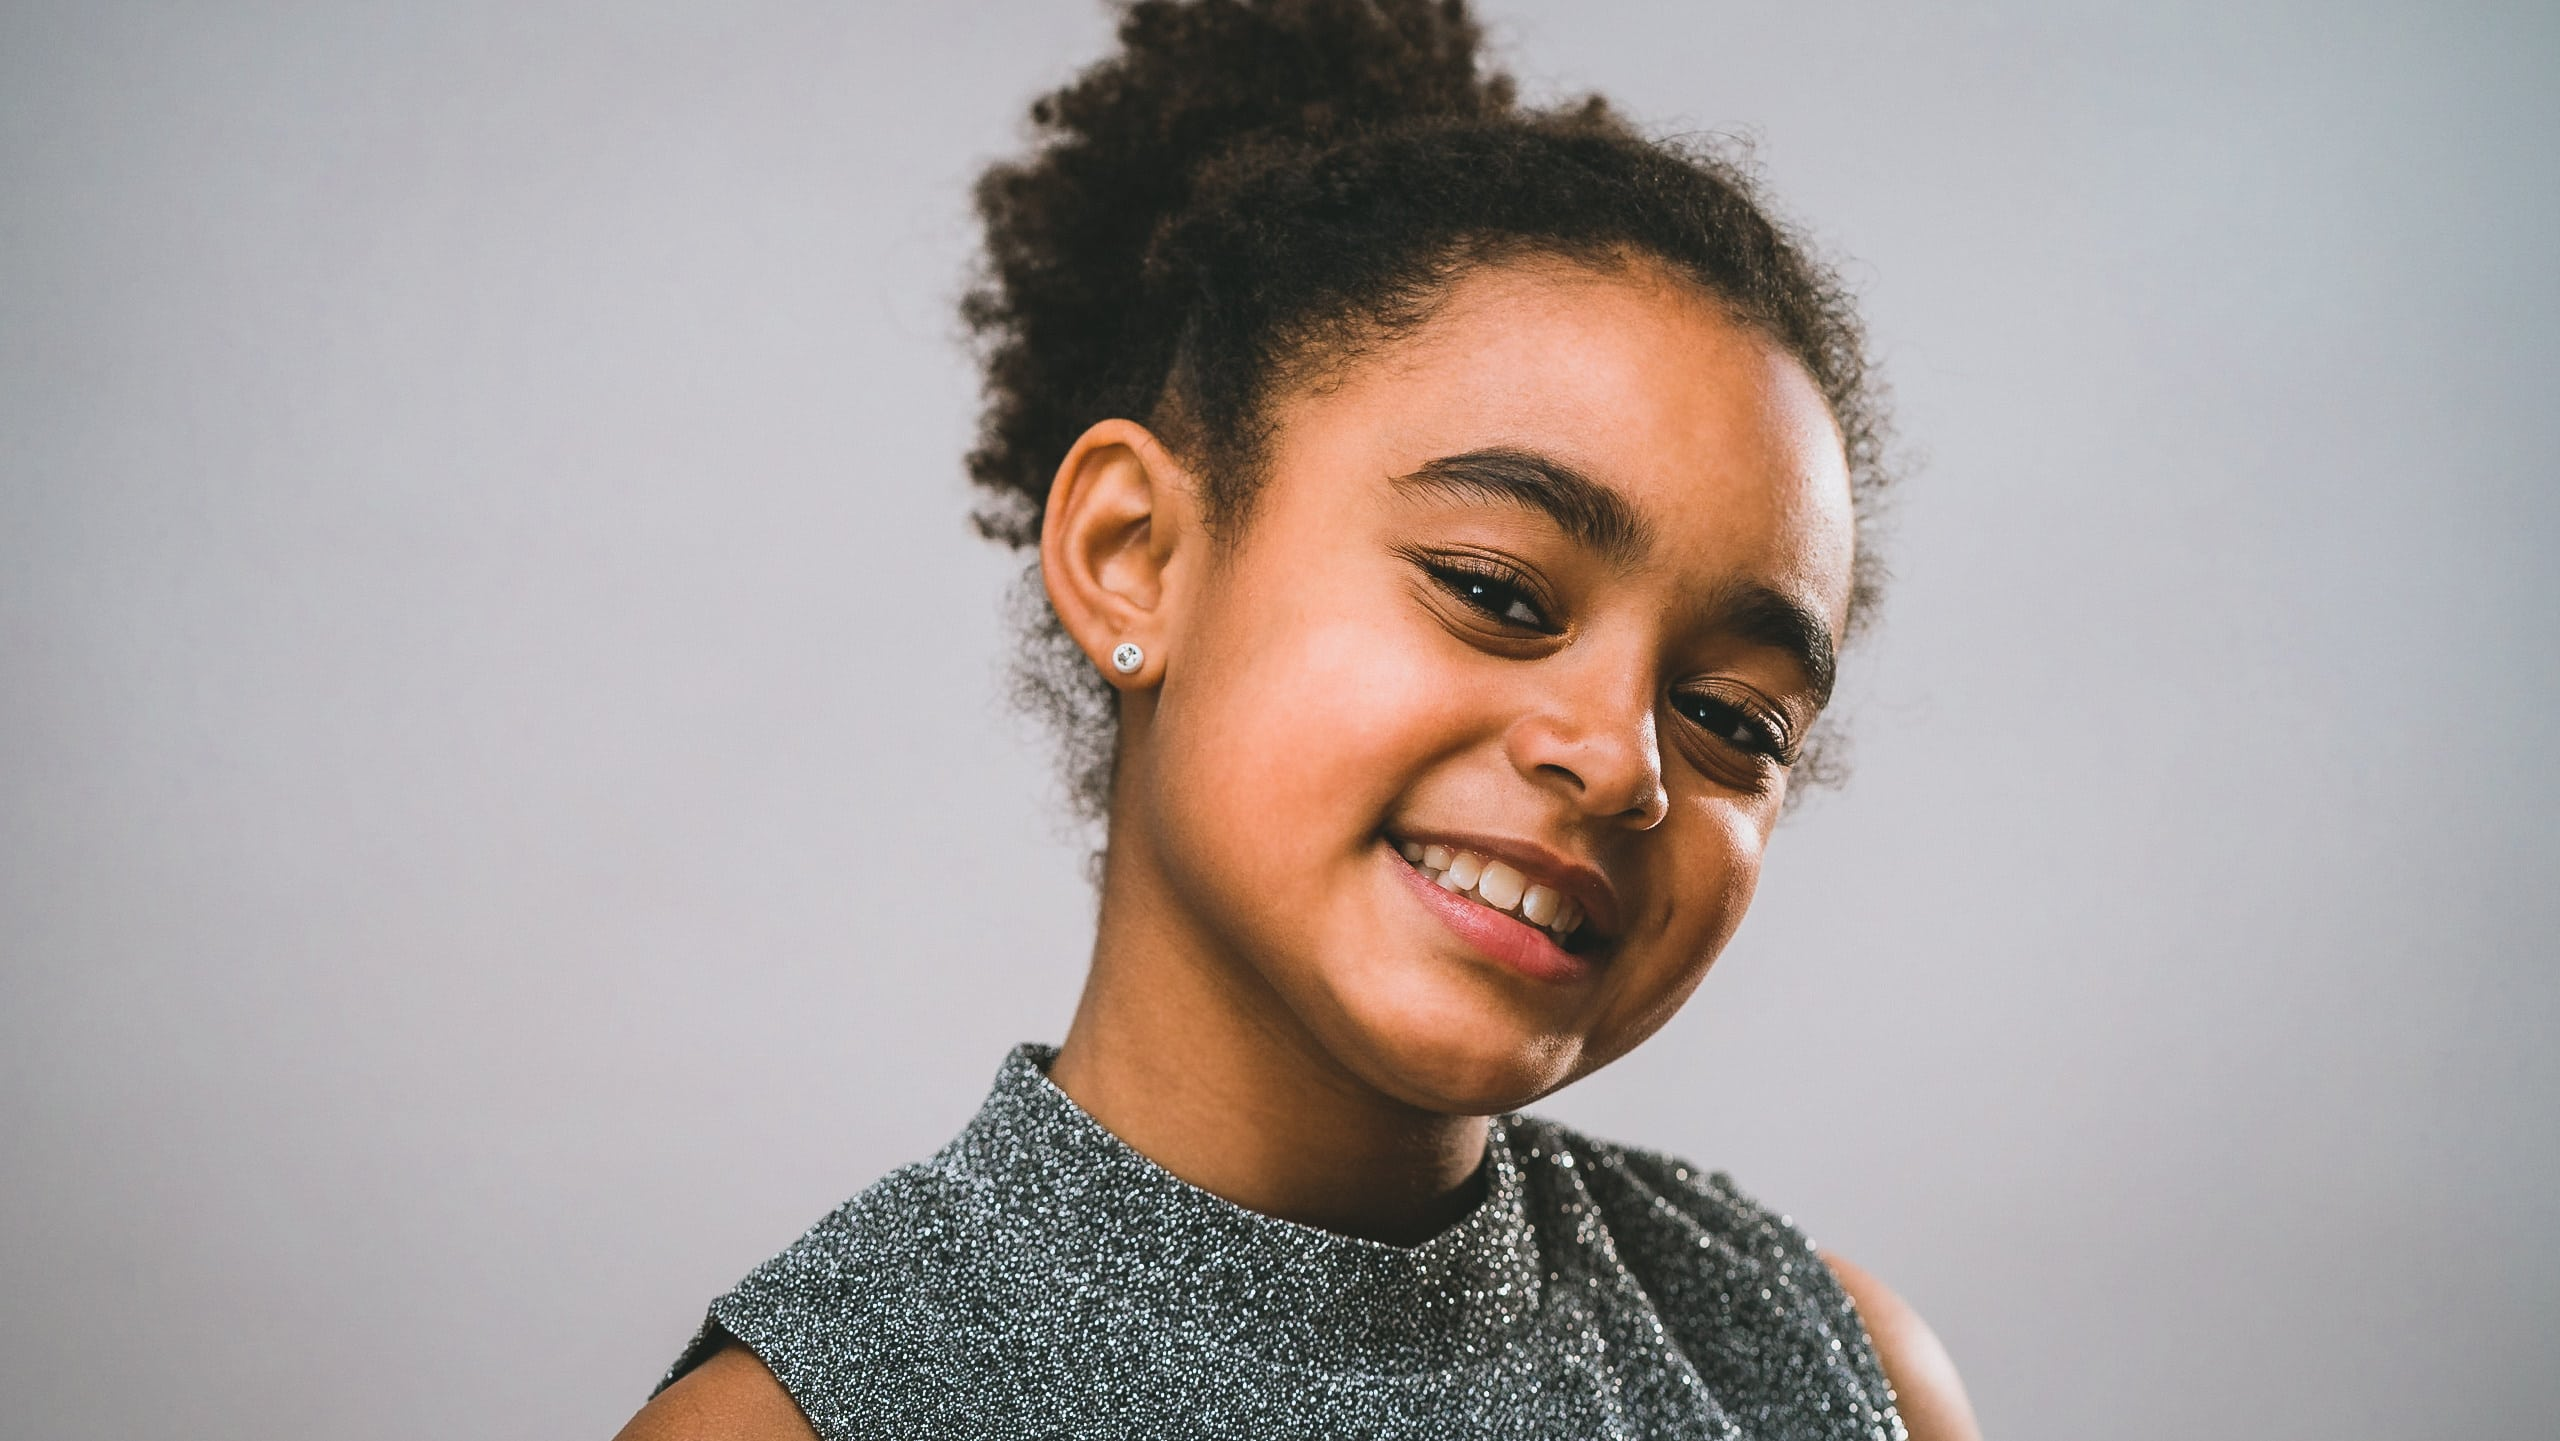 Child actor and performer head shots of Eva